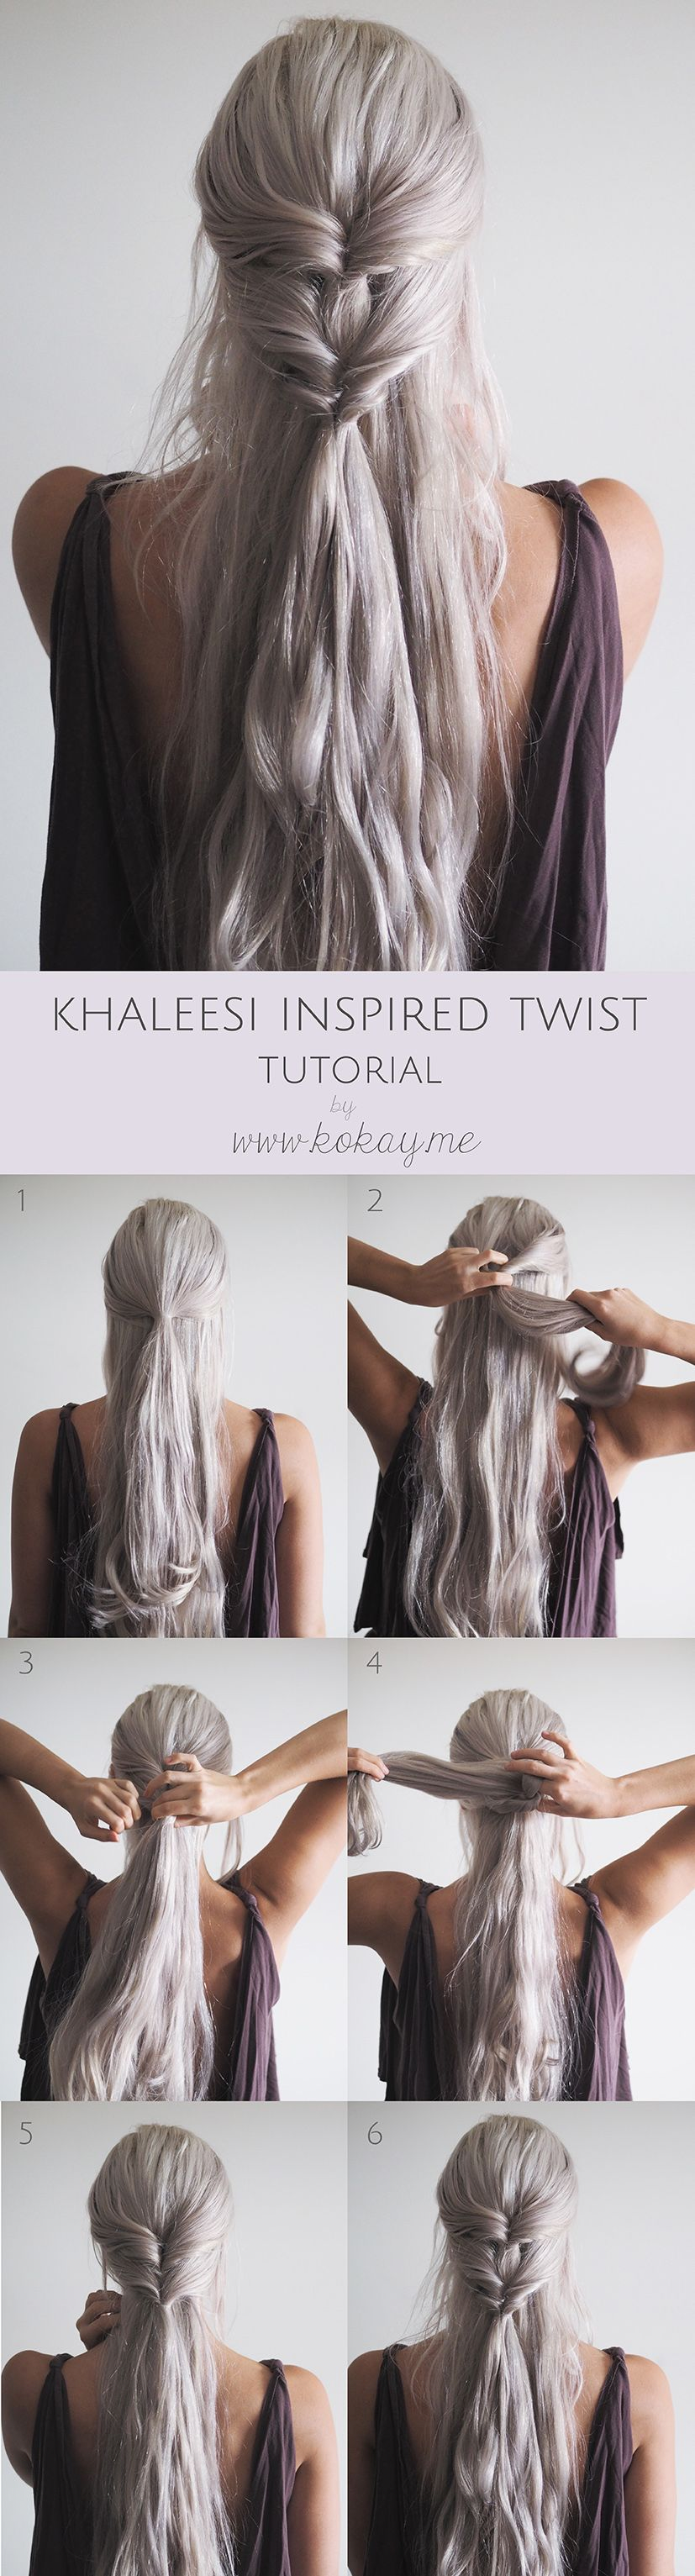 hair tutorials to style your hair hair inspo tutorials and th